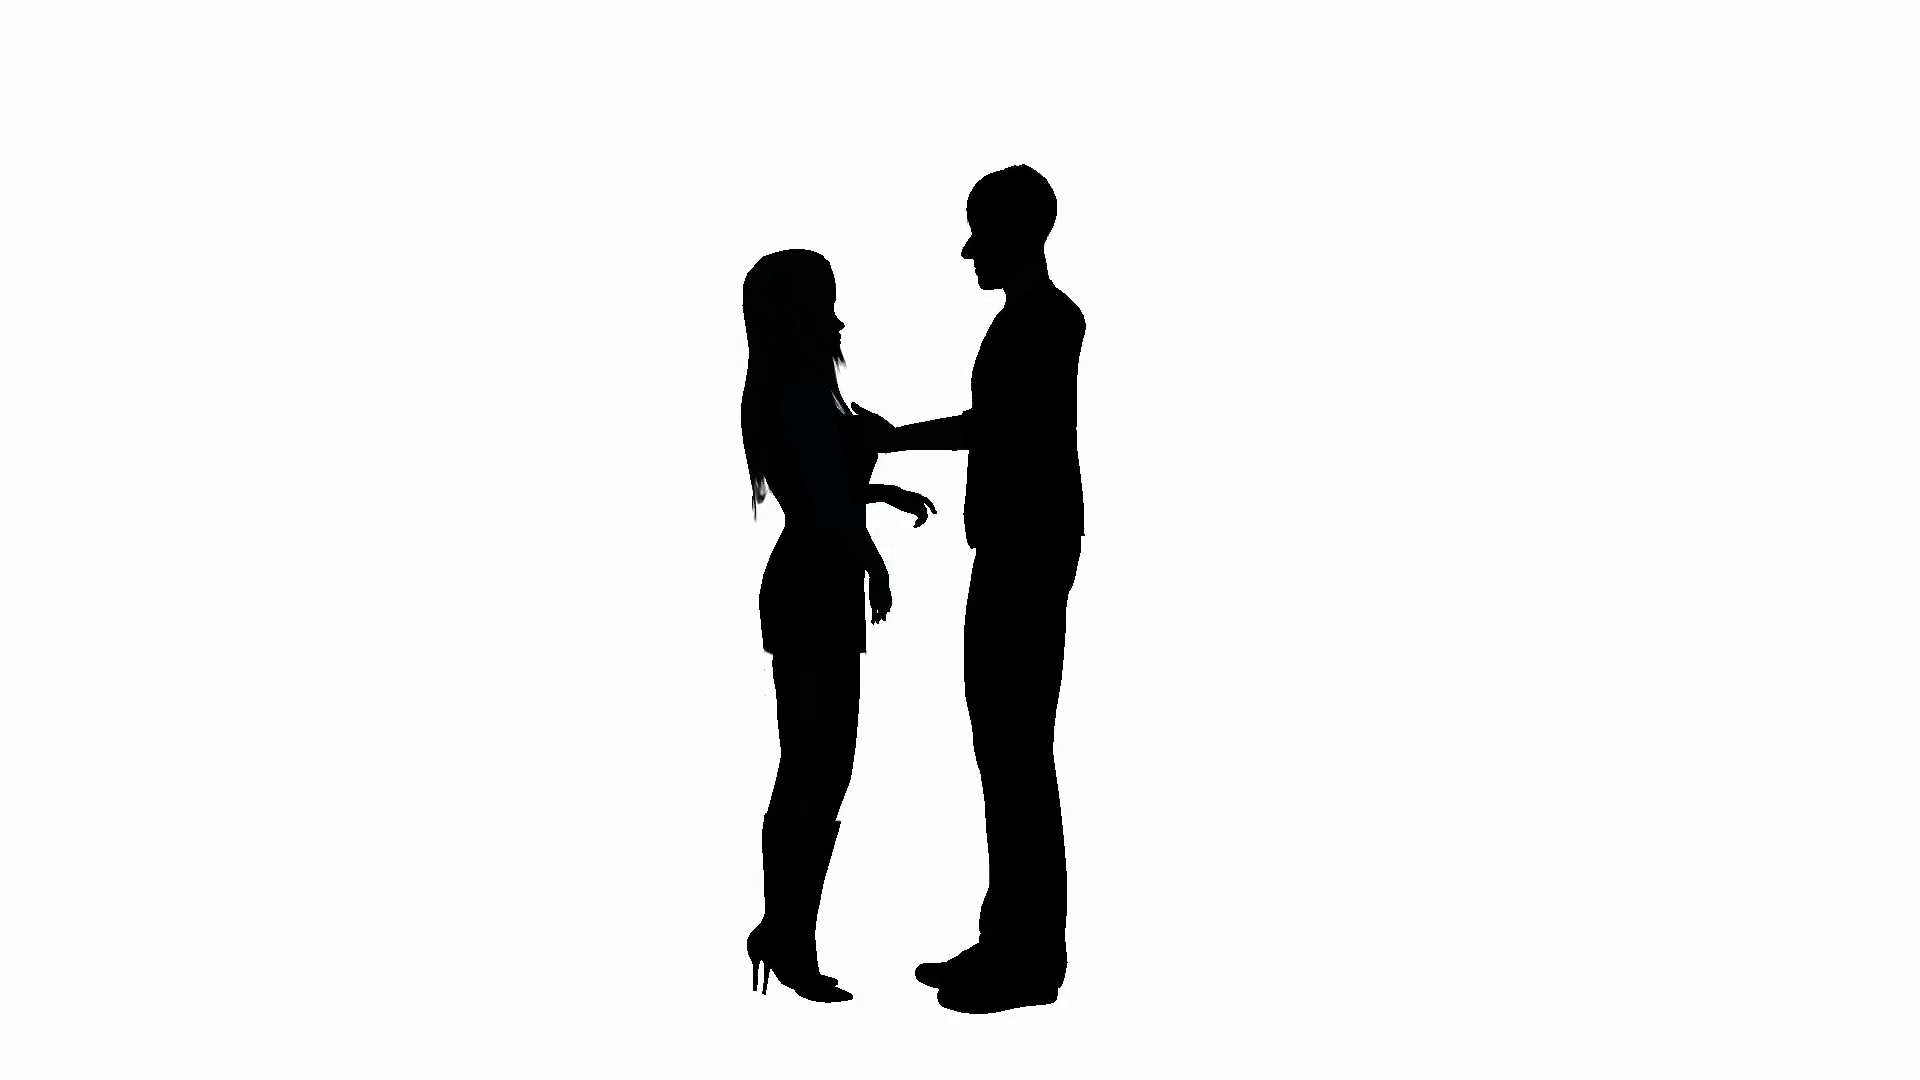 1920x1080 Silhouette Of A Man And Woman Having An Animated Conversation